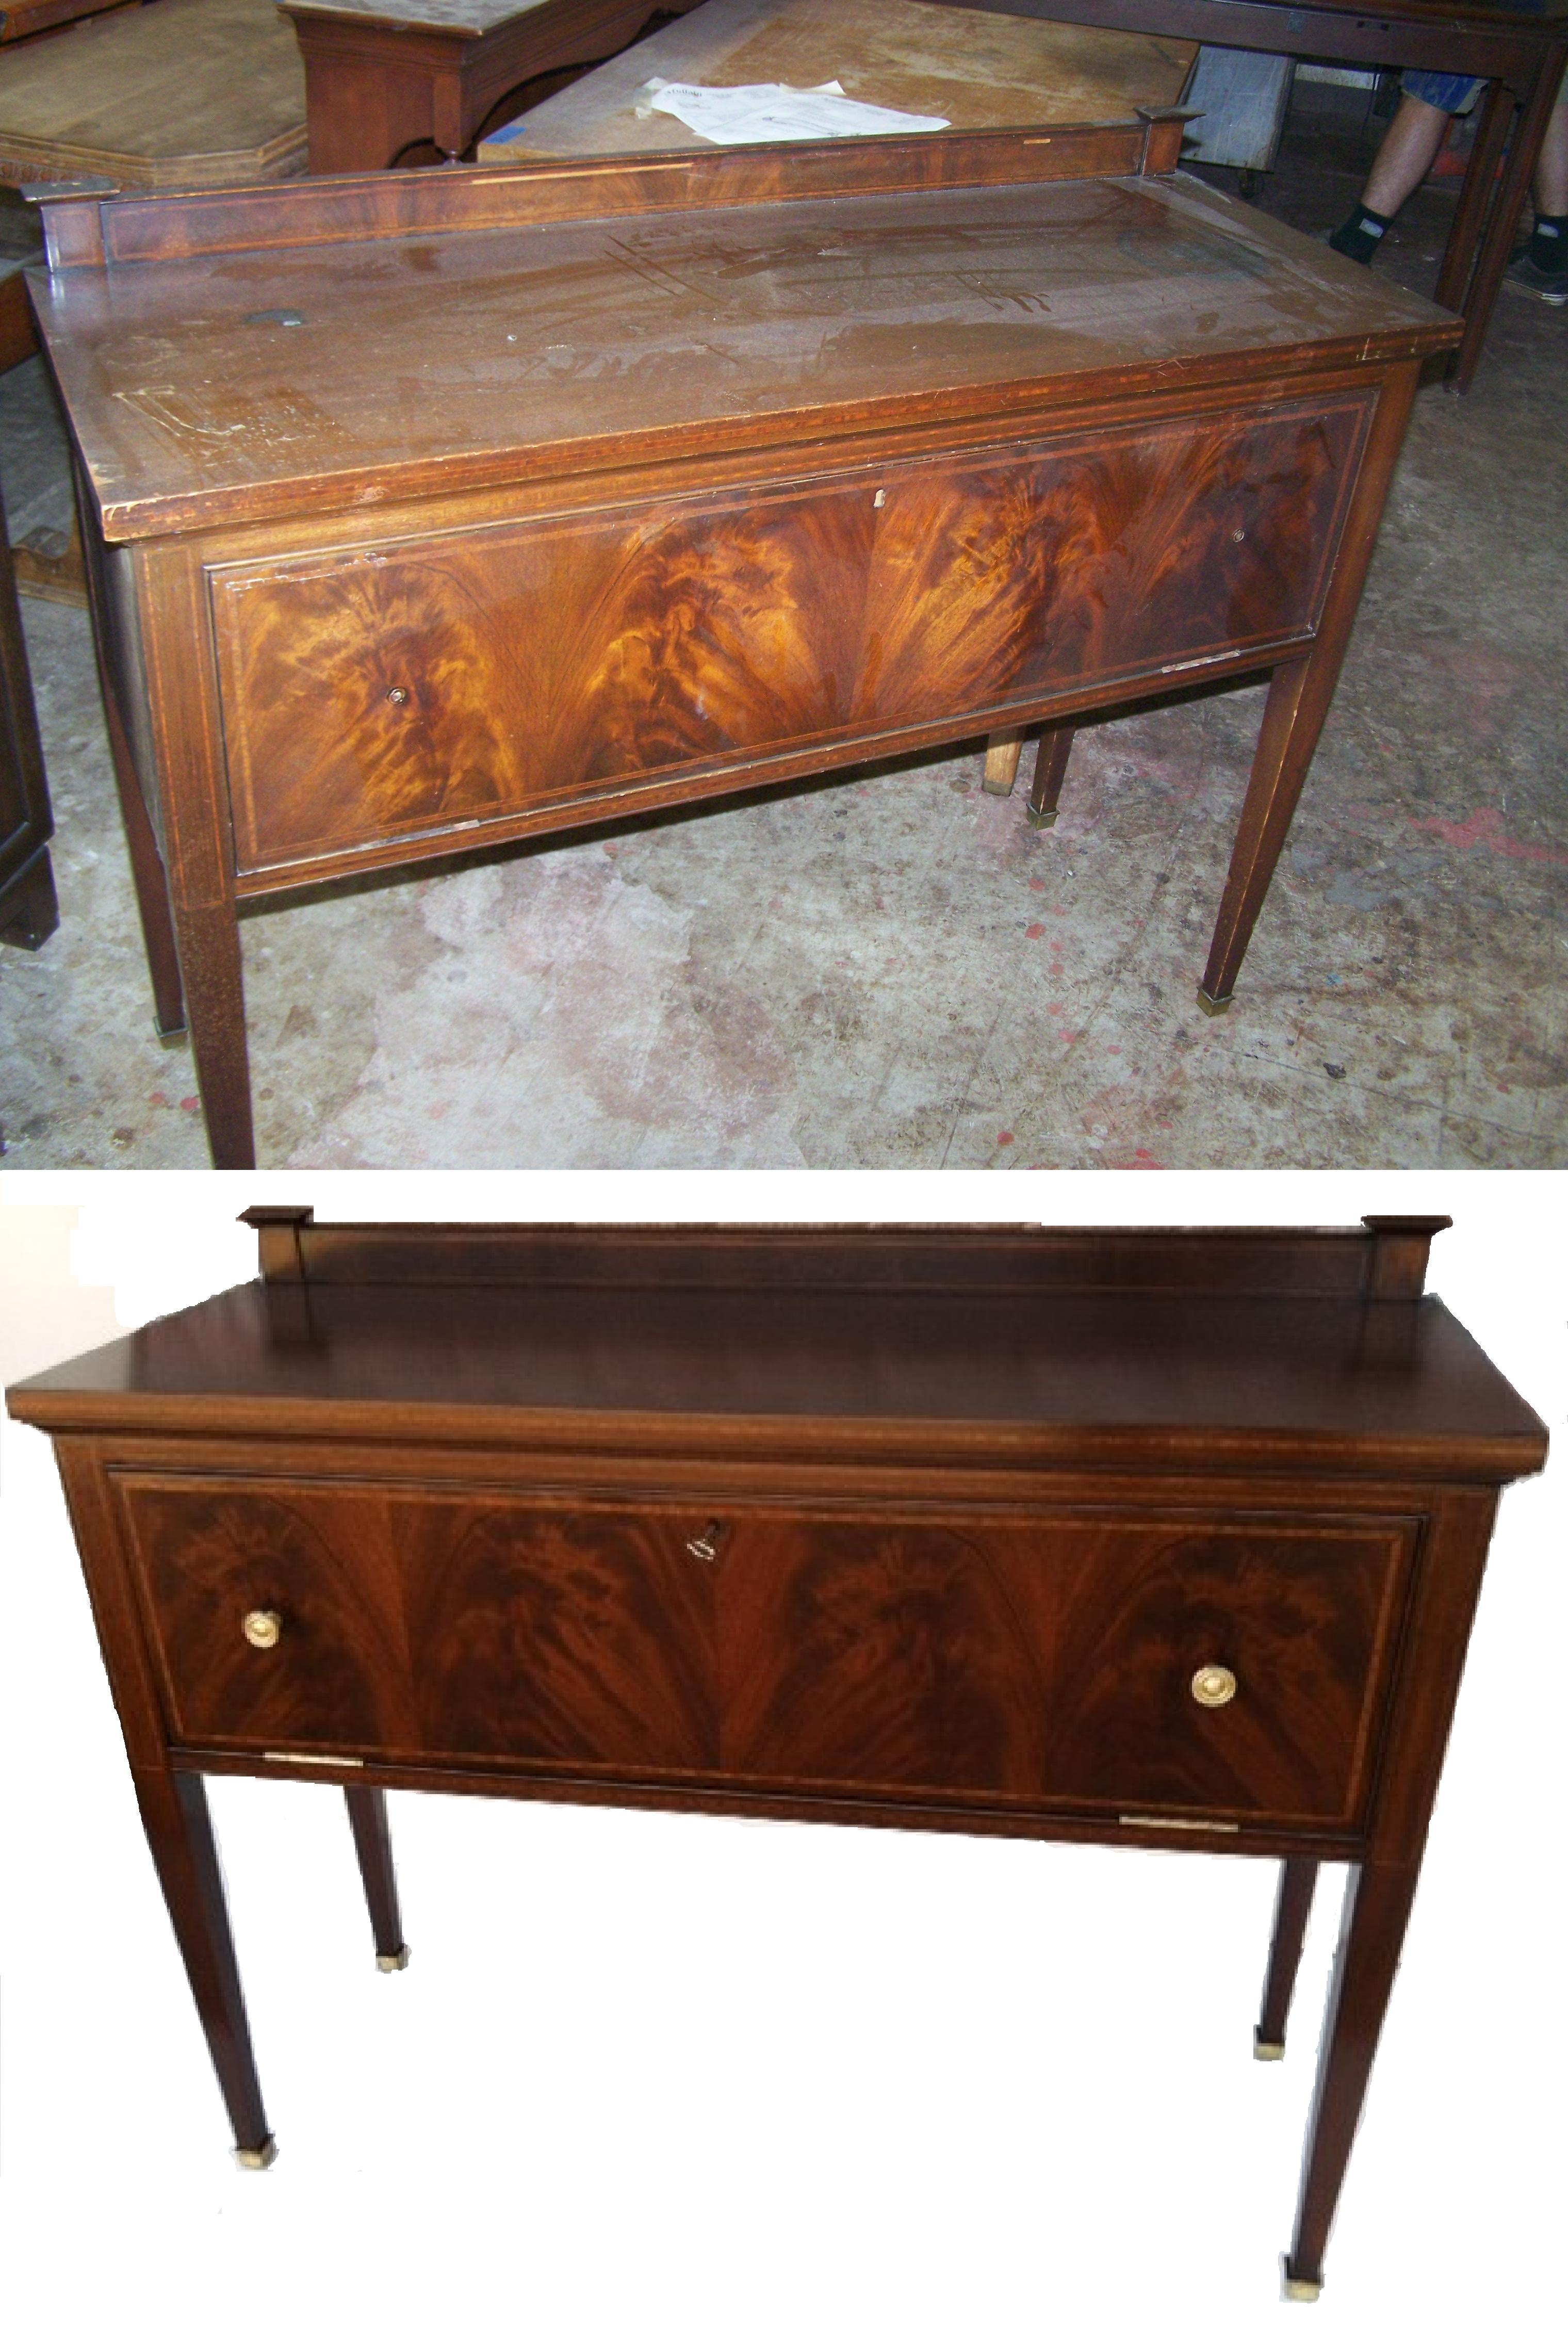 Antique Sideboard We've Repaired Loose And Missing Inlay The Finish Was Restored To Customers Desired Color And Sheen